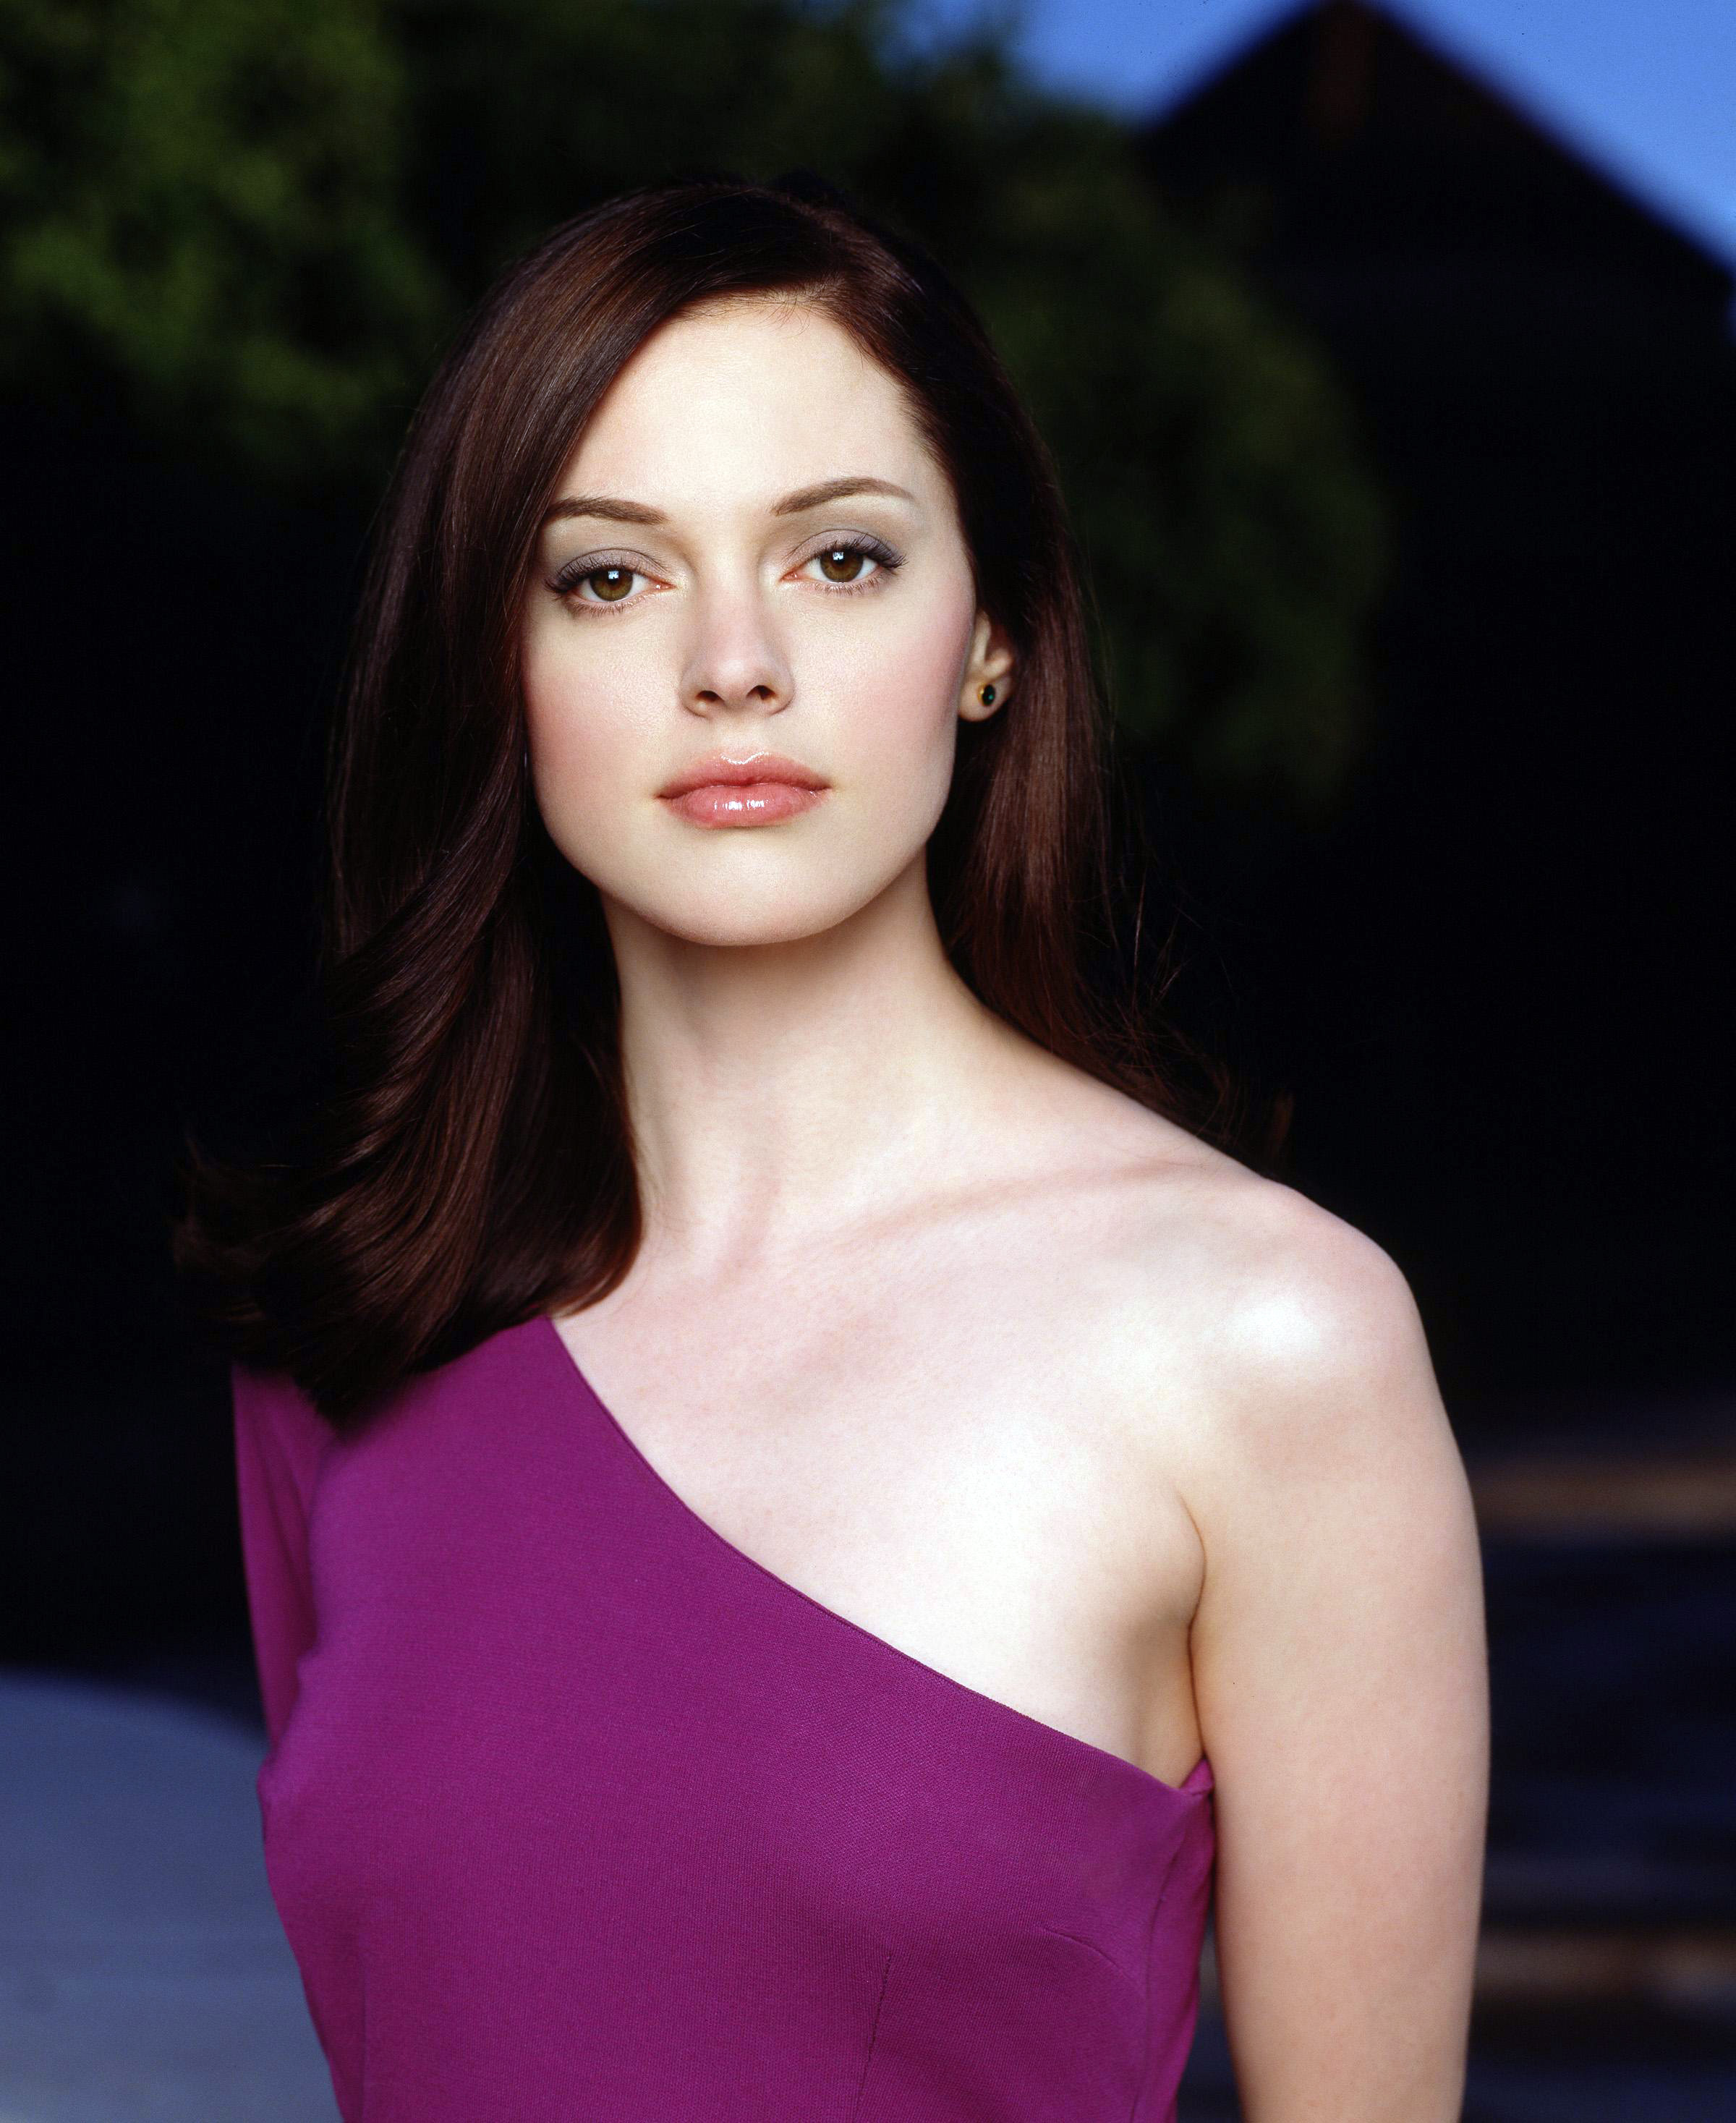 http://dvdbash.files.wordpress.com/2013/01/charmed-paige-rose-mcgowan-hot-girl-dvdbash-wordpress60.jpg